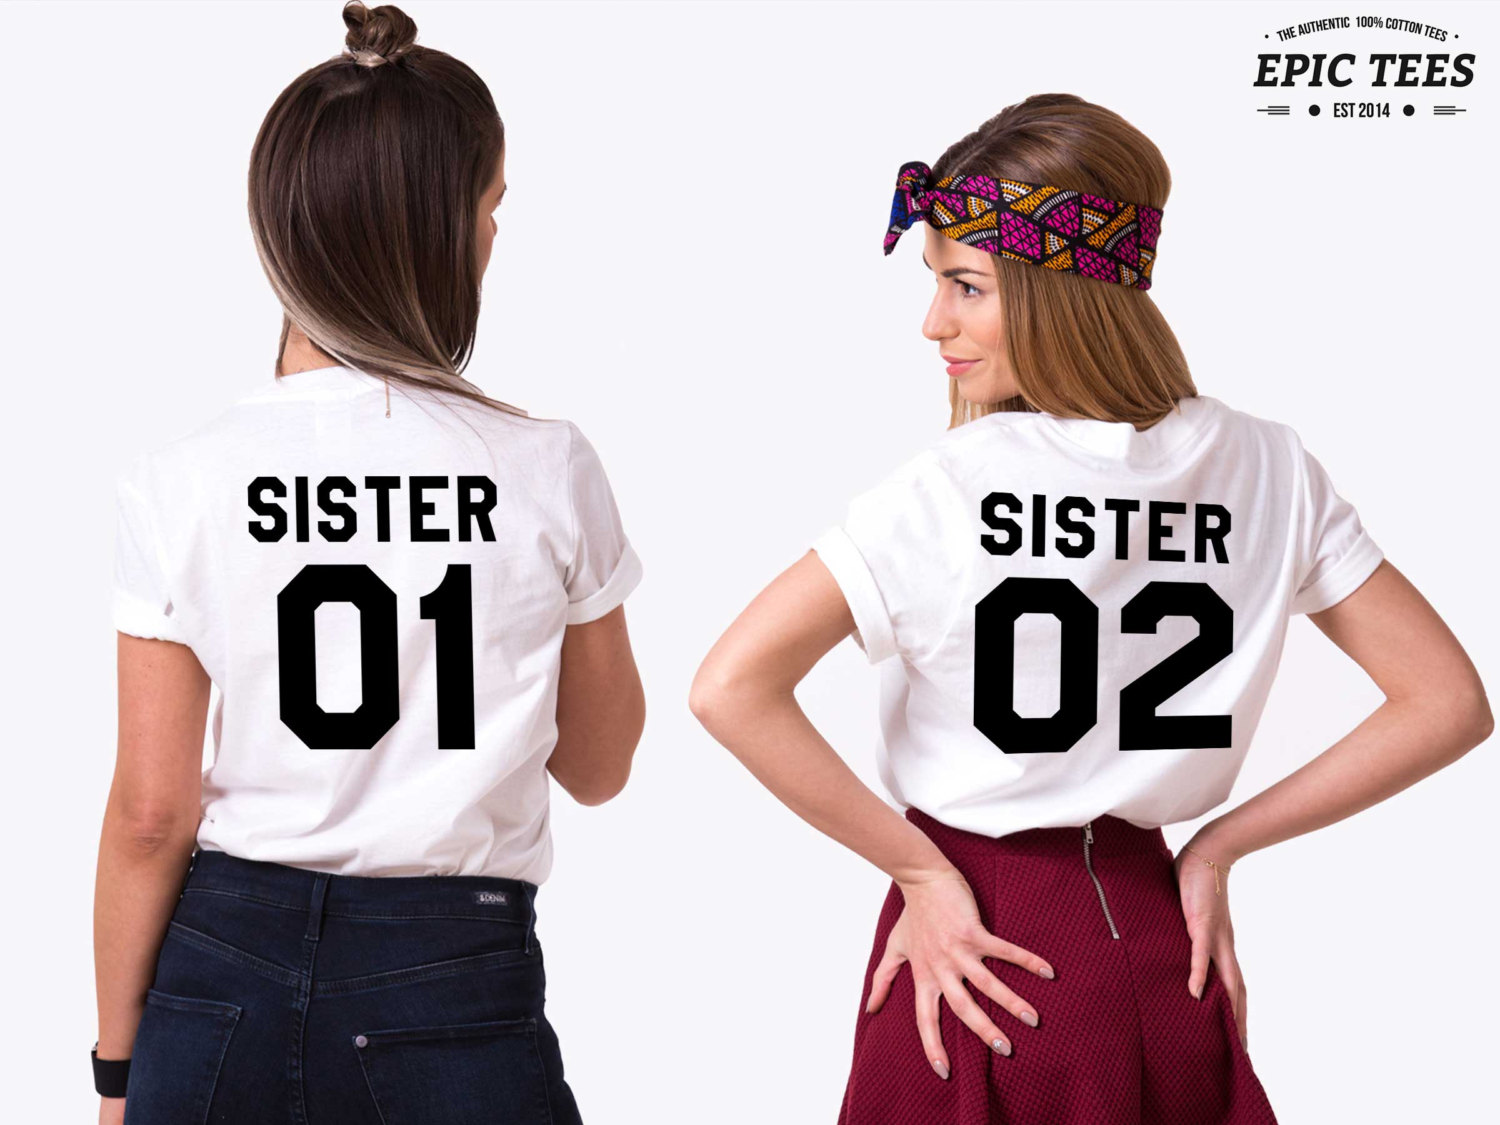 sister 01 shirts matching best friends shirts unisex. Black Bedroom Furniture Sets. Home Design Ideas